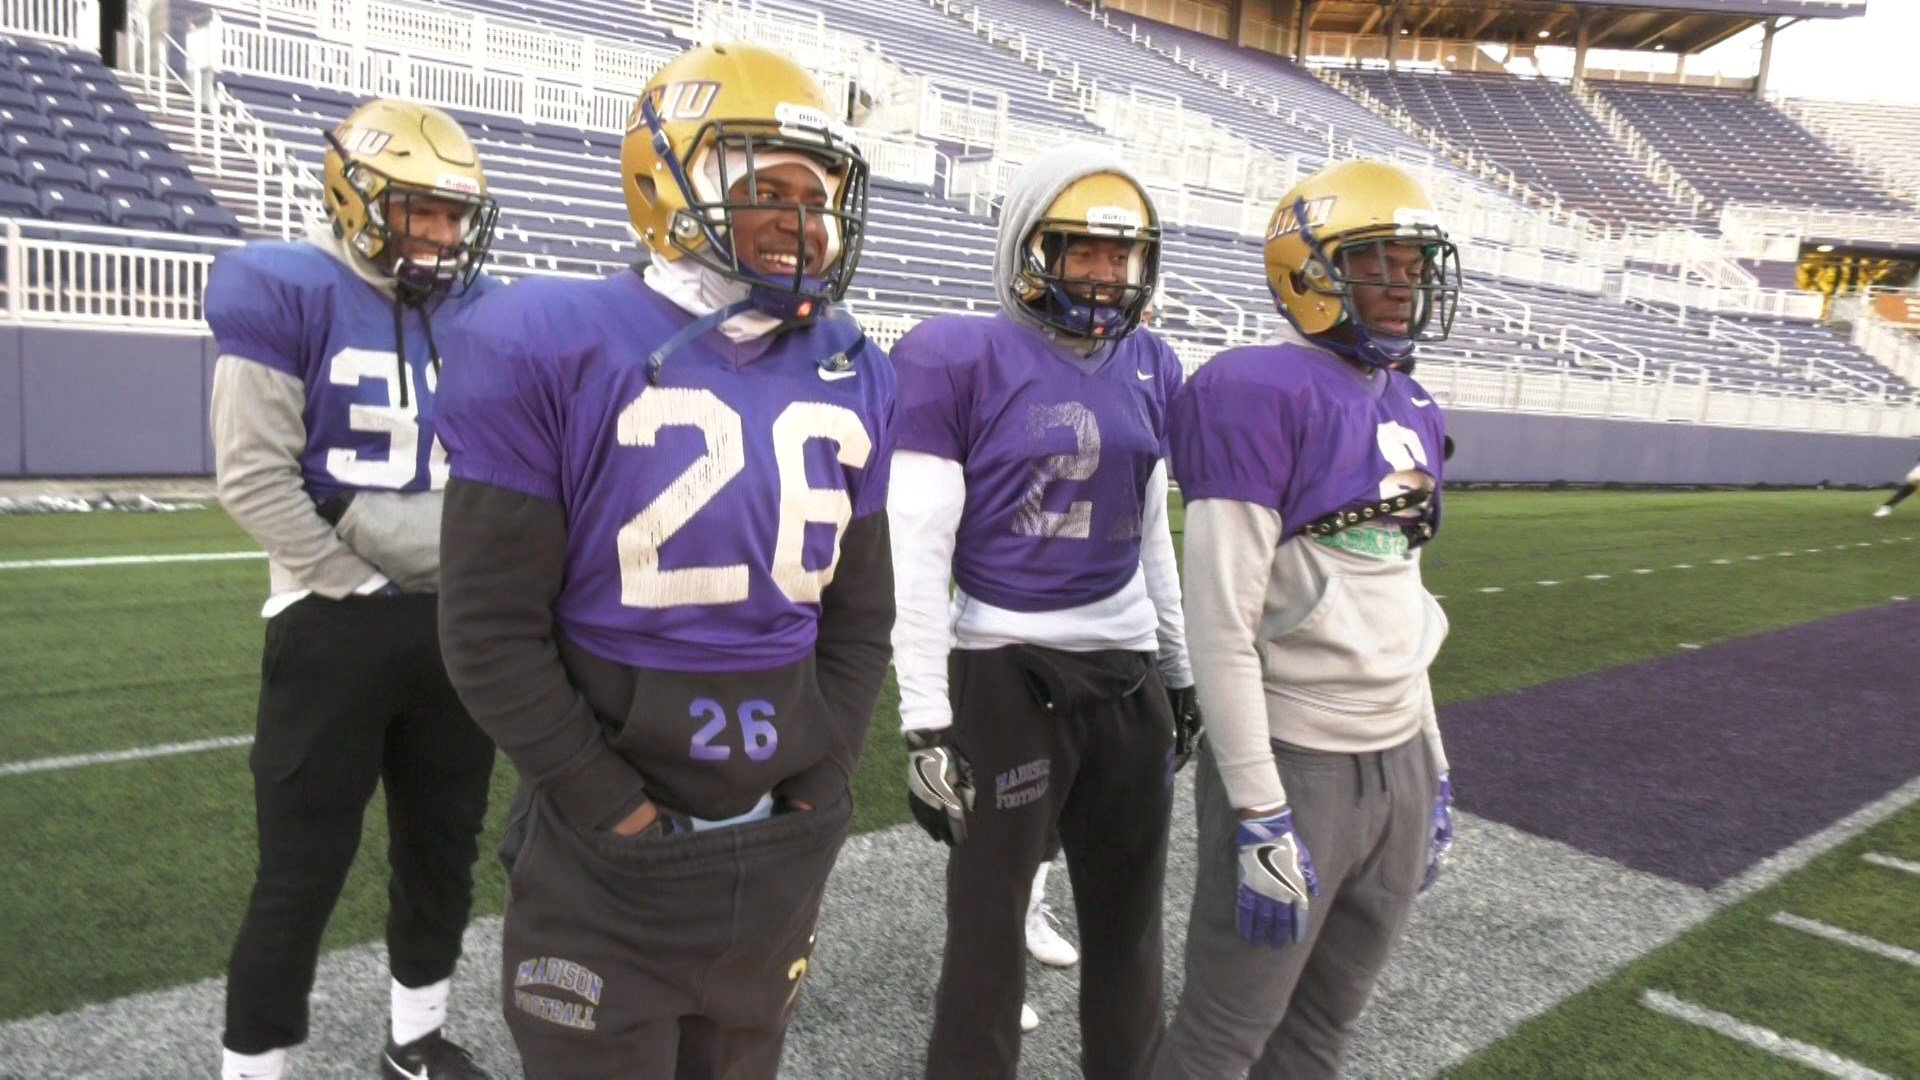 JMU football practices on New Year's Day